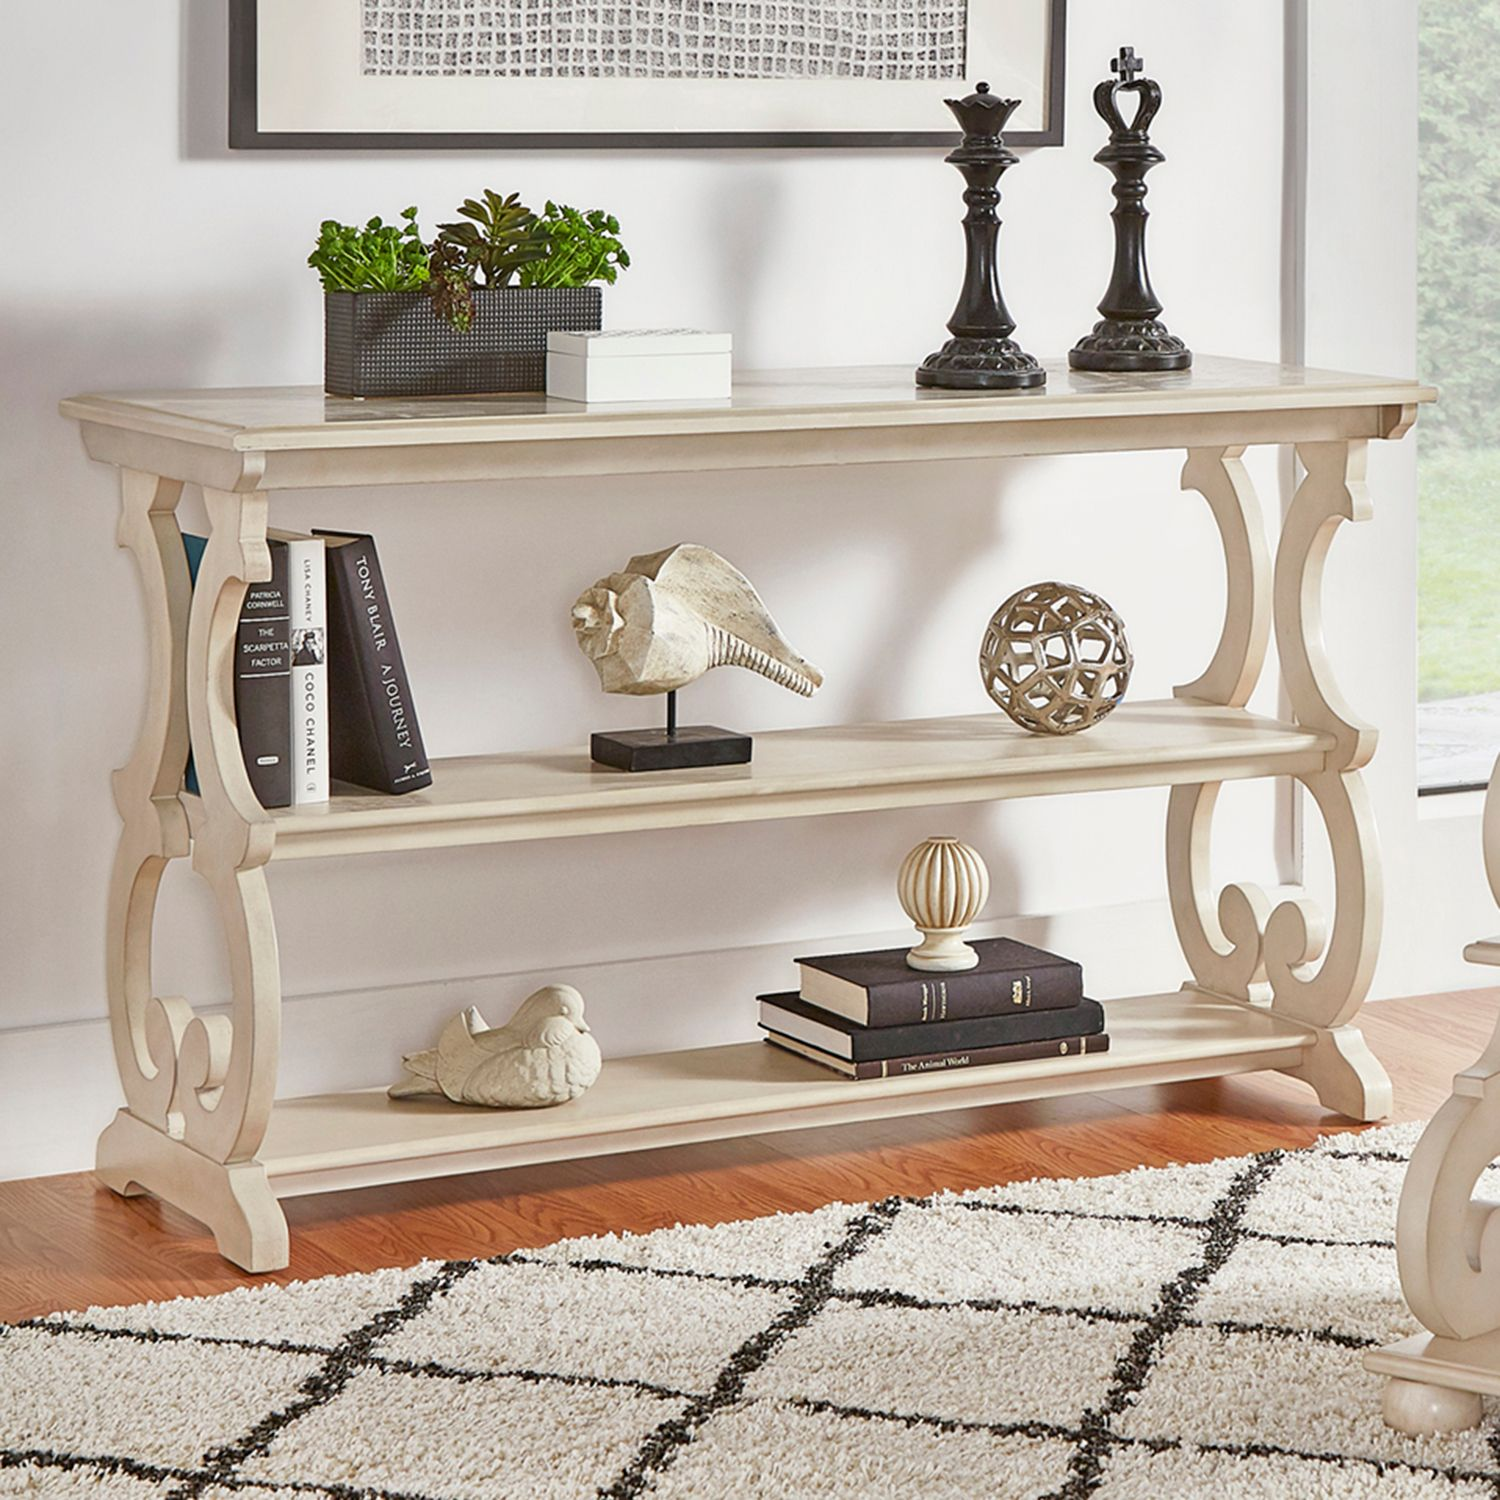 HomeVance Danica Console Table